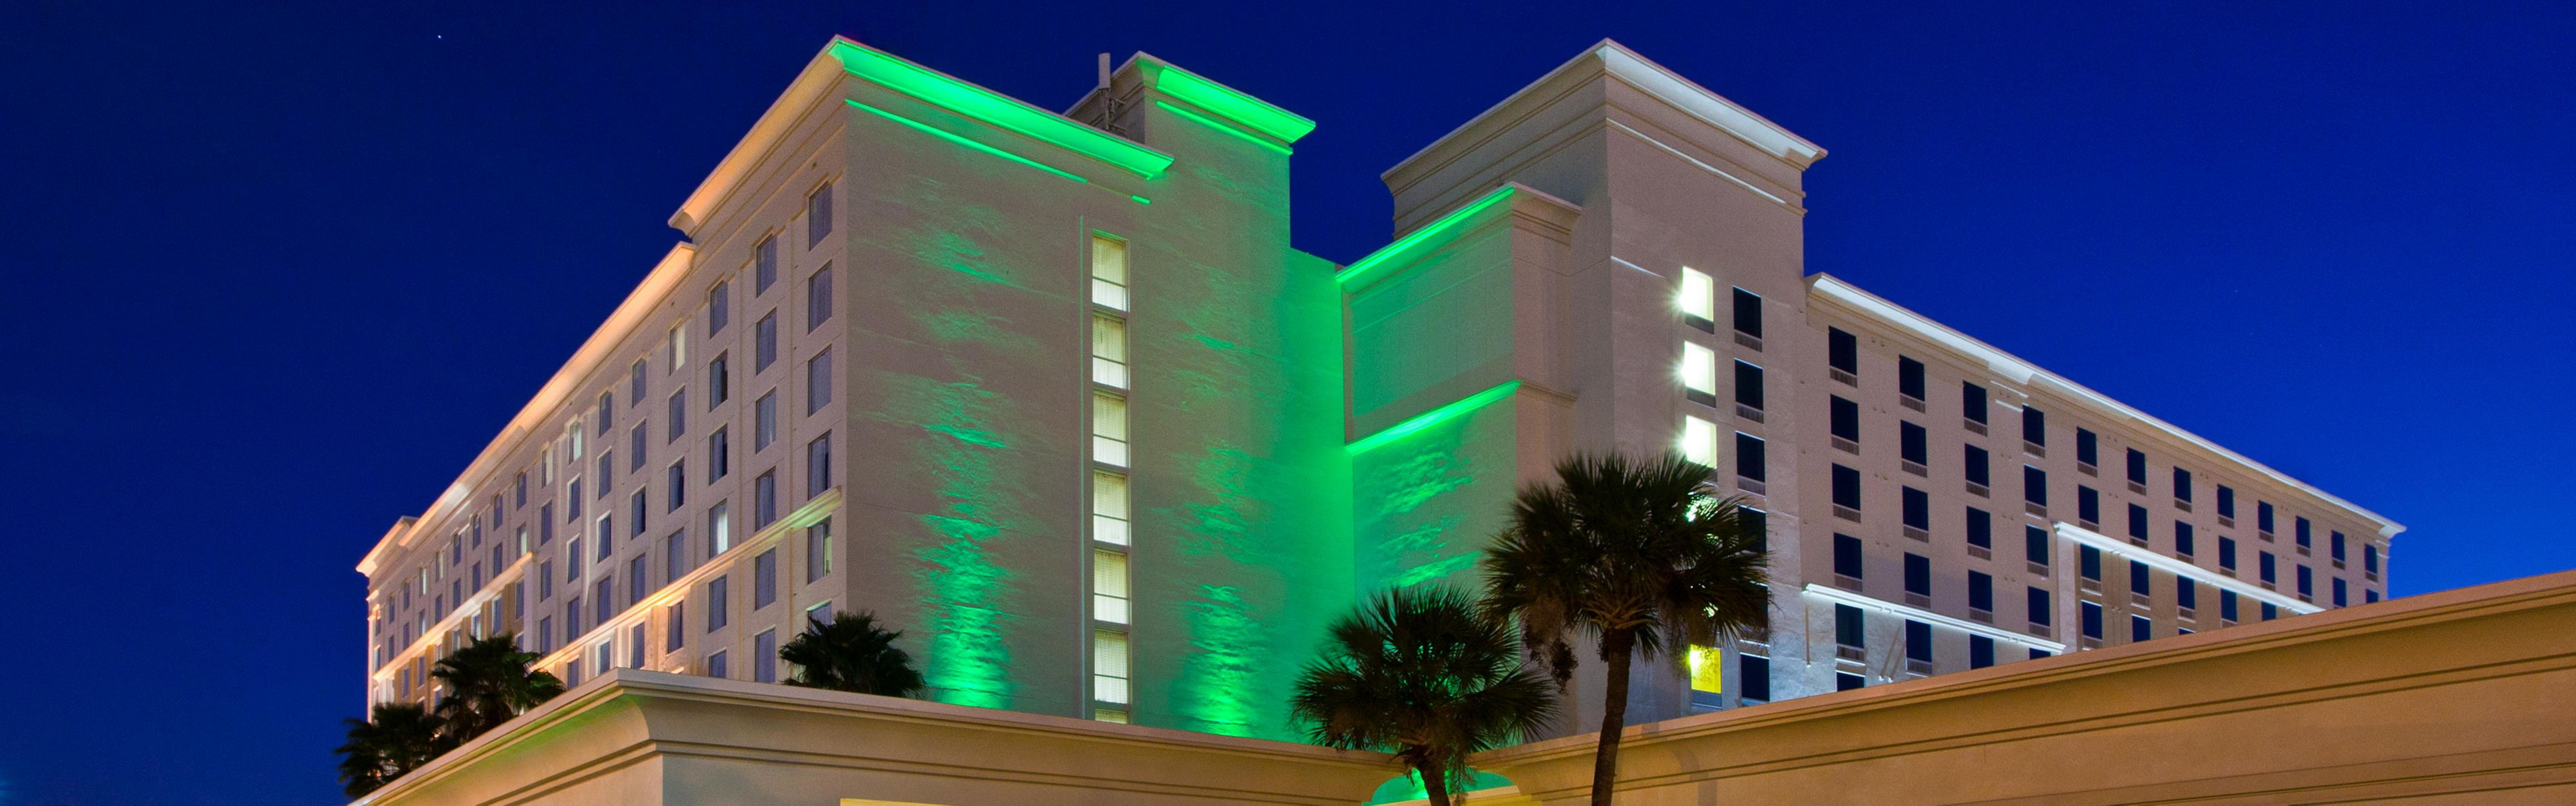 Holiday Inn & Suites Across From Universal Orlando image 0